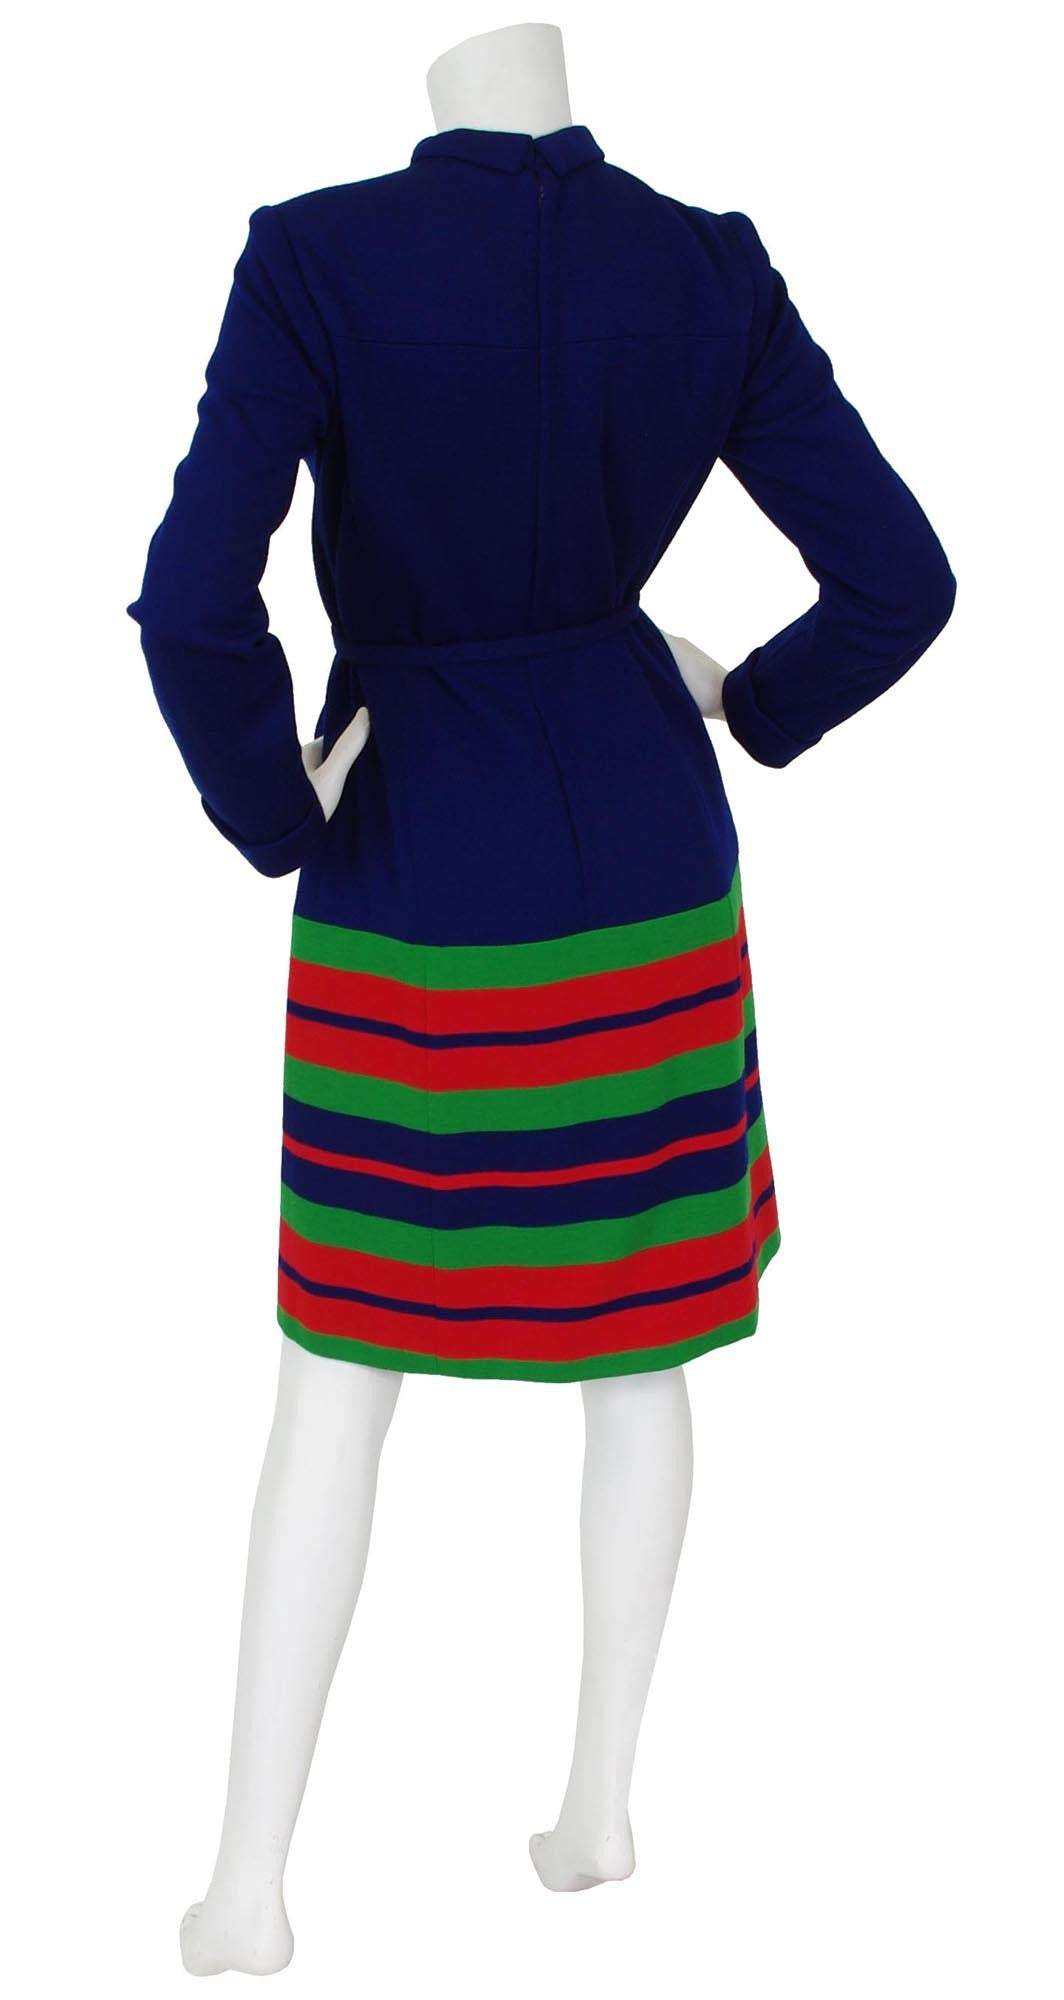 1973 United Airlines Design Mod Striped Navy Wool Jersey Dress